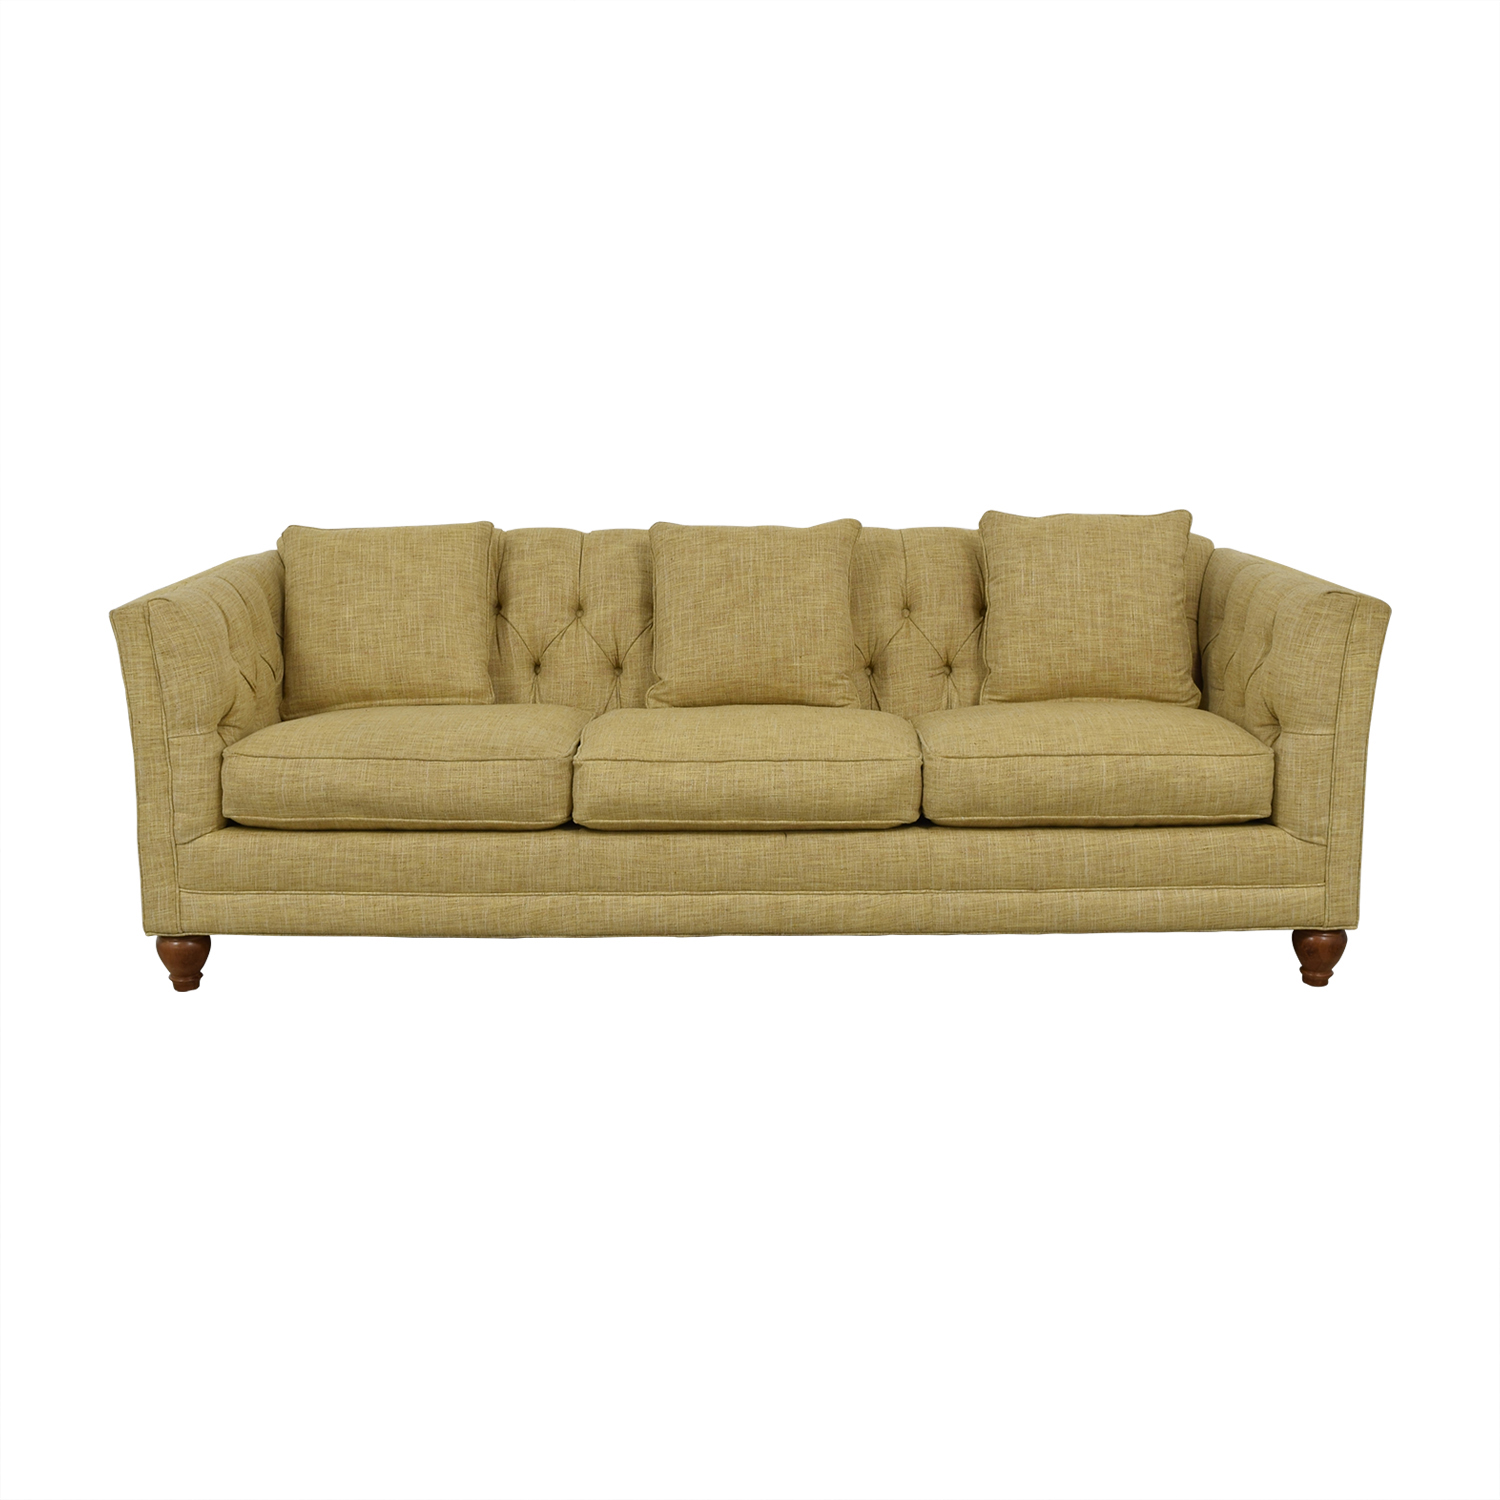 Country Willow Country Willow Tan Three-Cushion Sofa Classic Sofas